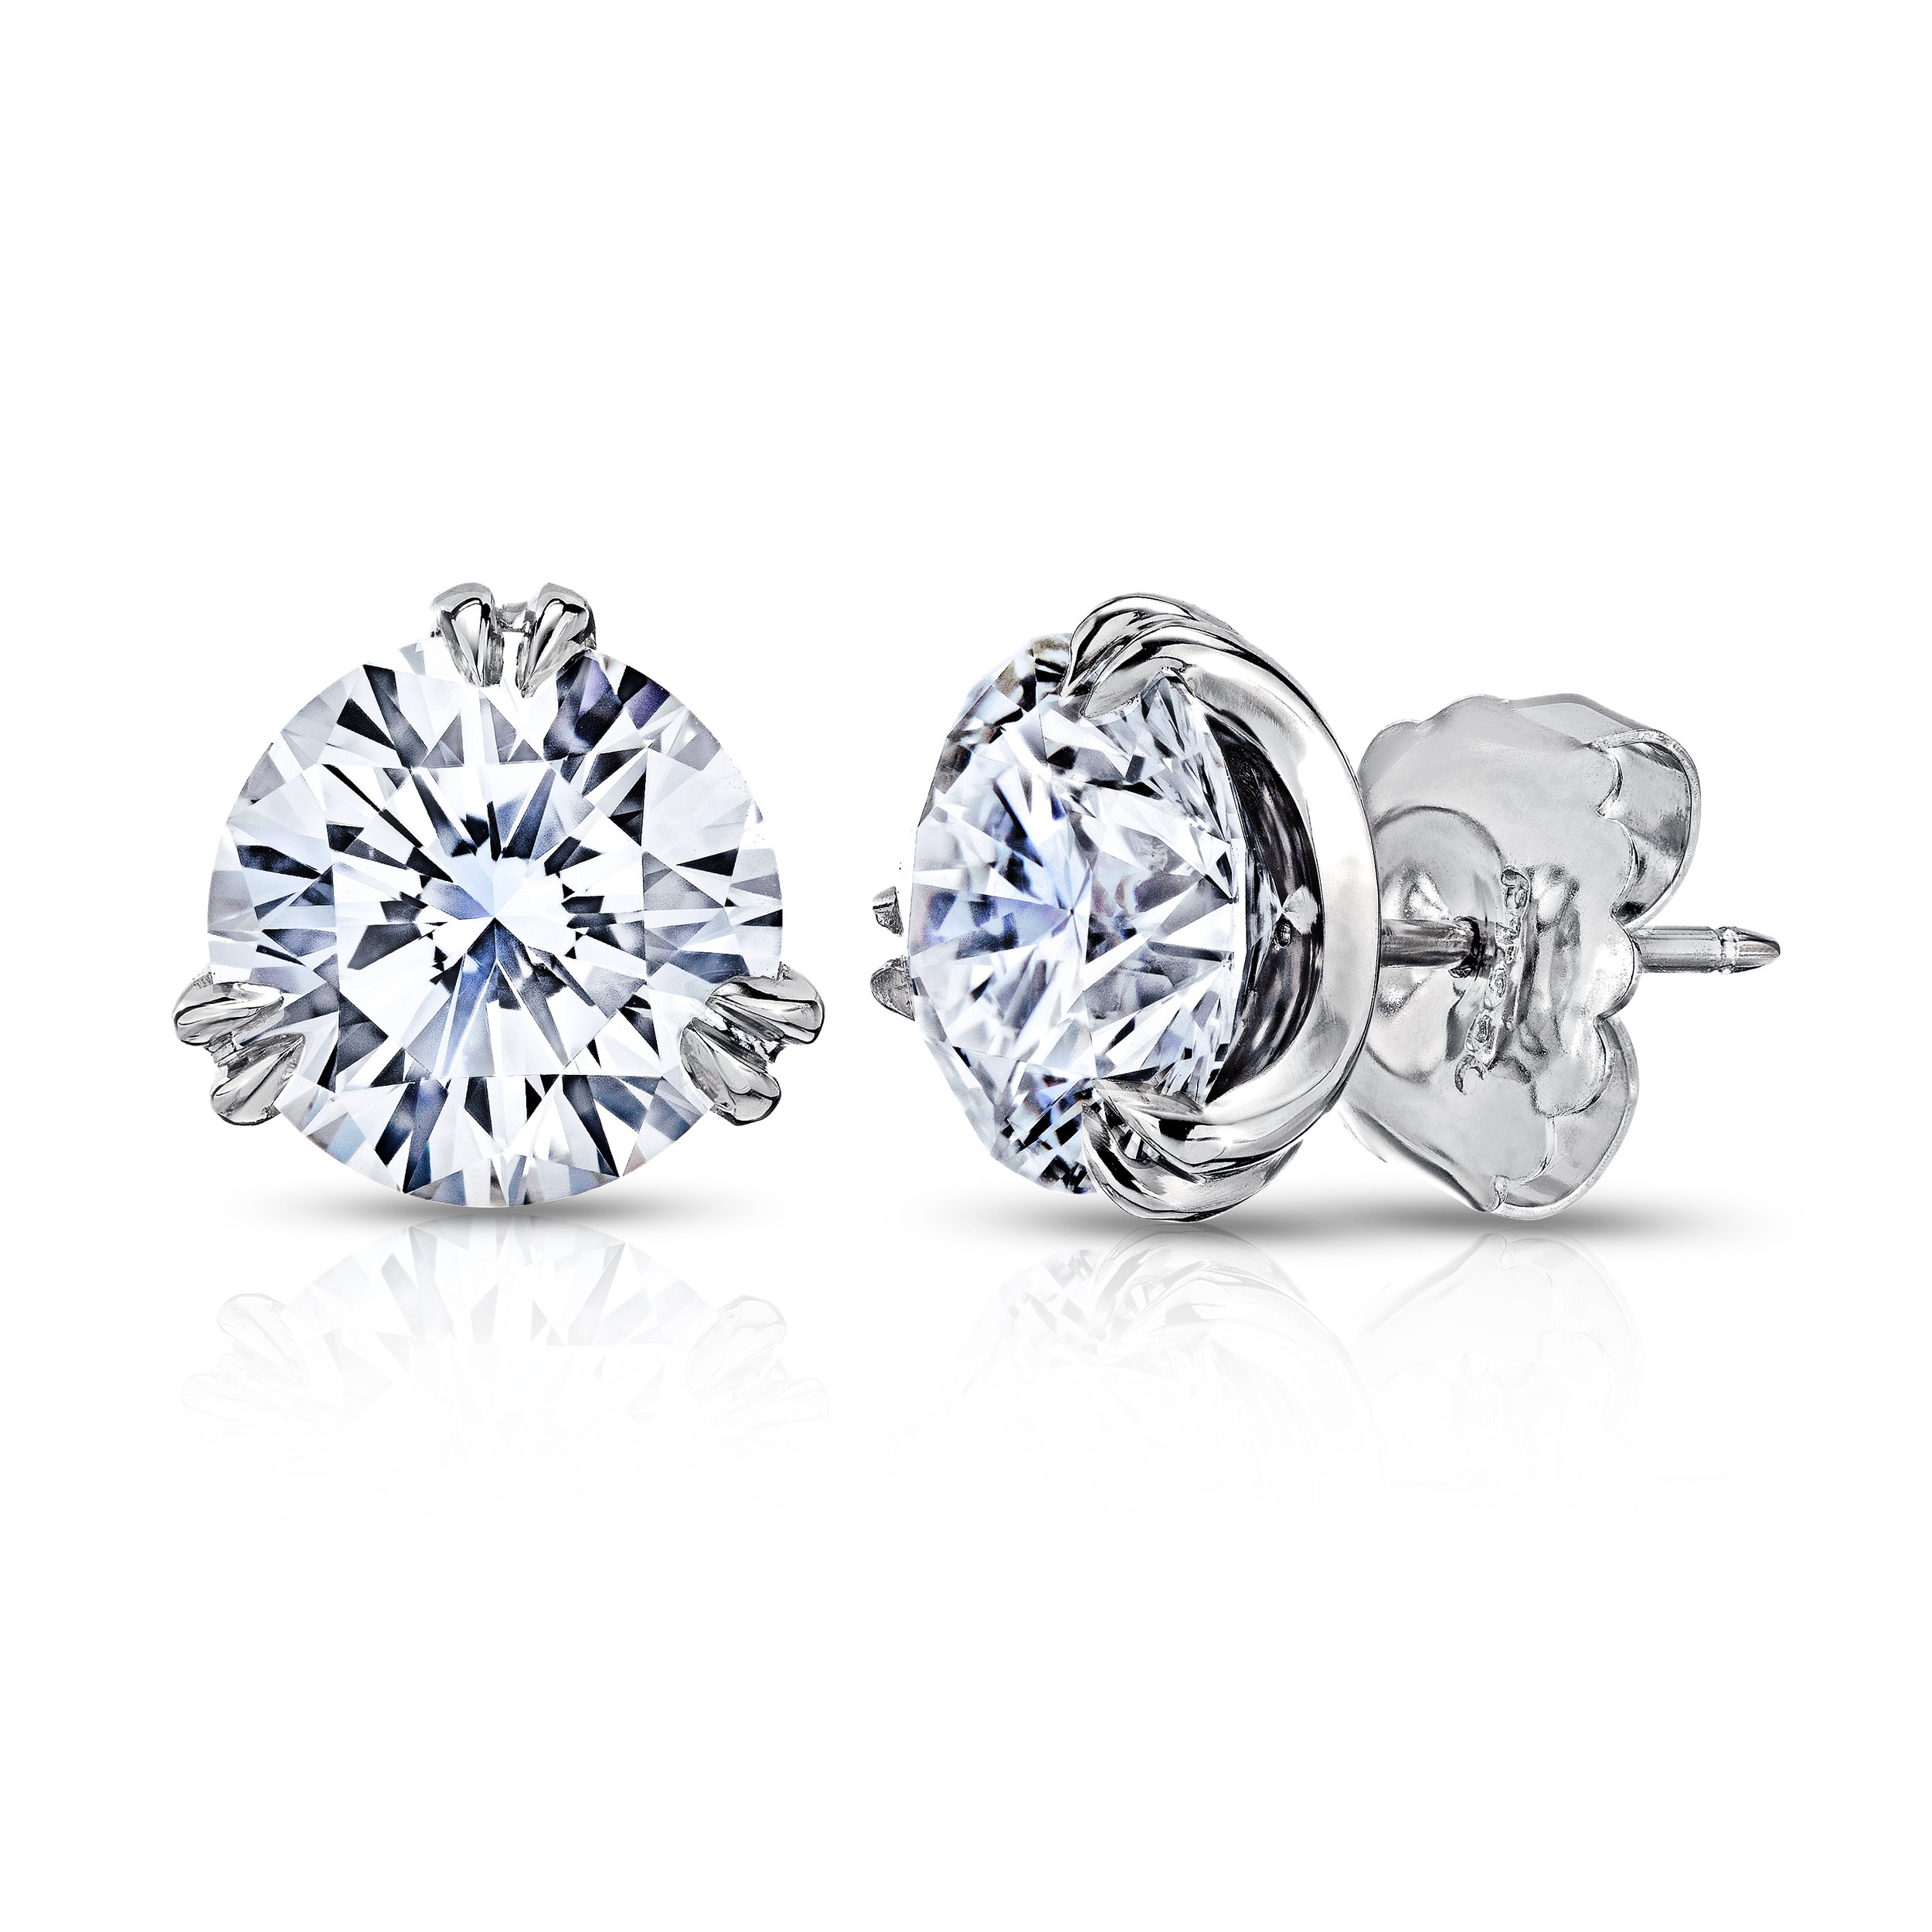 3 SPLIT PRONG DIAMOND STUD EARRINGS CRAFTED IN PLATINUM, 4.00 CTW